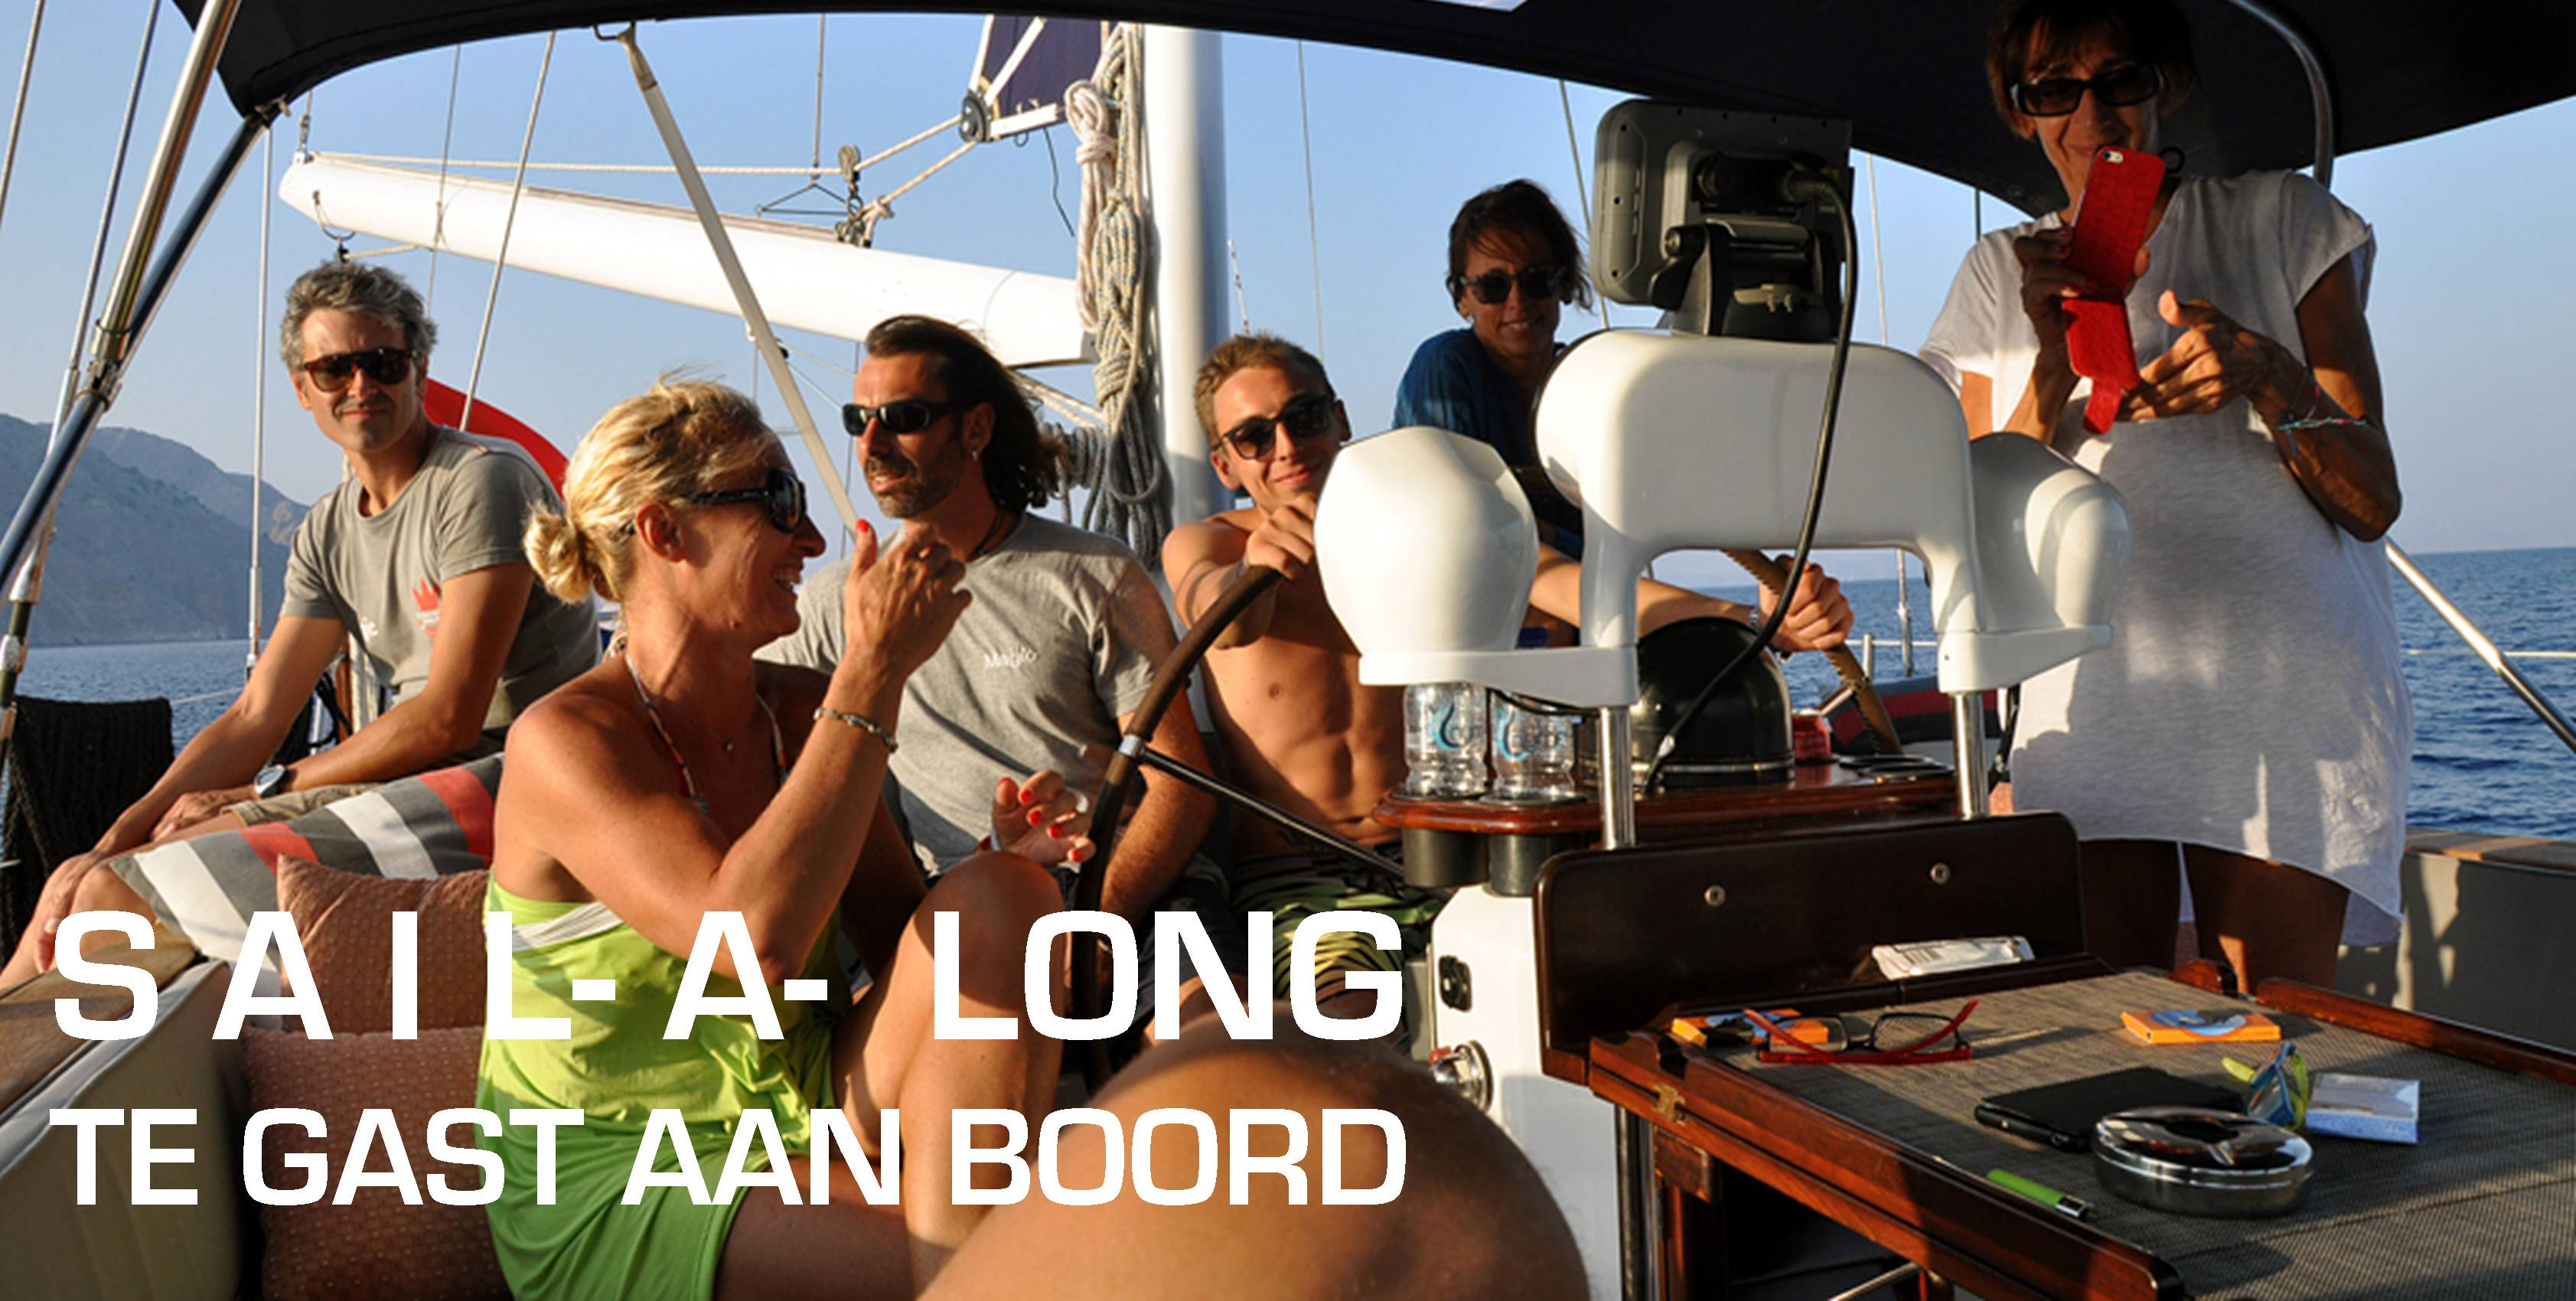 Meezeilvakantie - te gast aan boord | Sail-a-long holiday - guest on board | Sail in Greece Rhodes | sail-in-greece.net